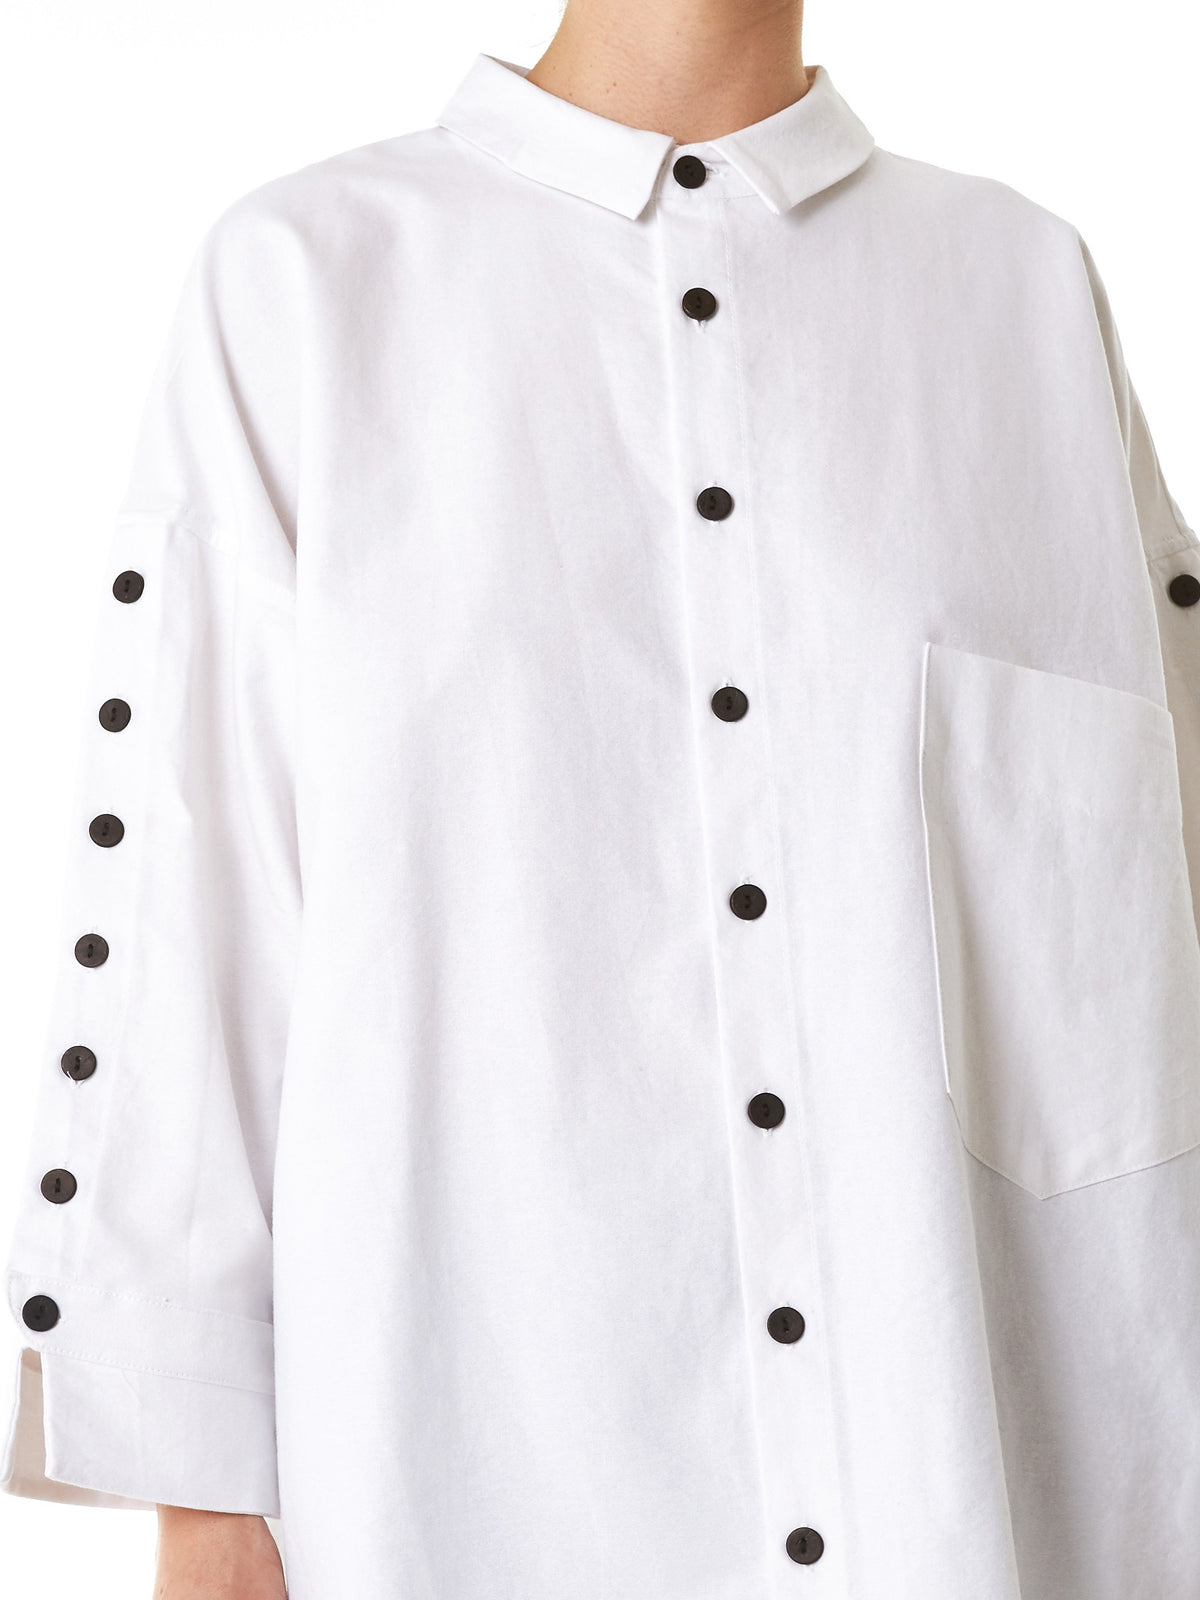 Deconstructed Button-Down Shirt (782-BUTTON-UP-WHITE-OXFORD) - H. Lorenzo